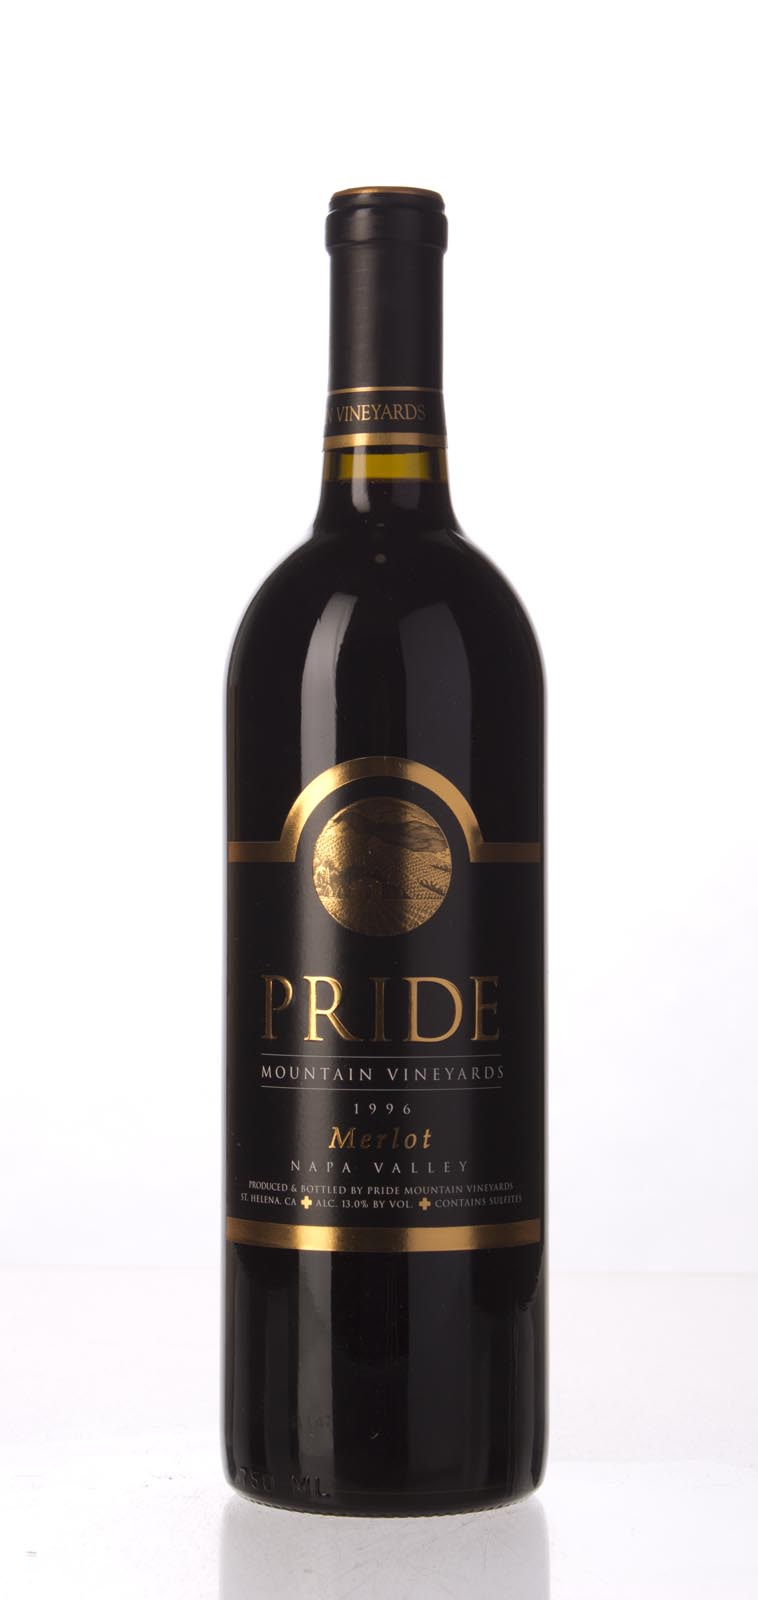 Pride Mountain Vineyards Merlot Napa/Sonoma 1996, 750mL (WA90) from The BPW - Merchants of rare and fine wines.